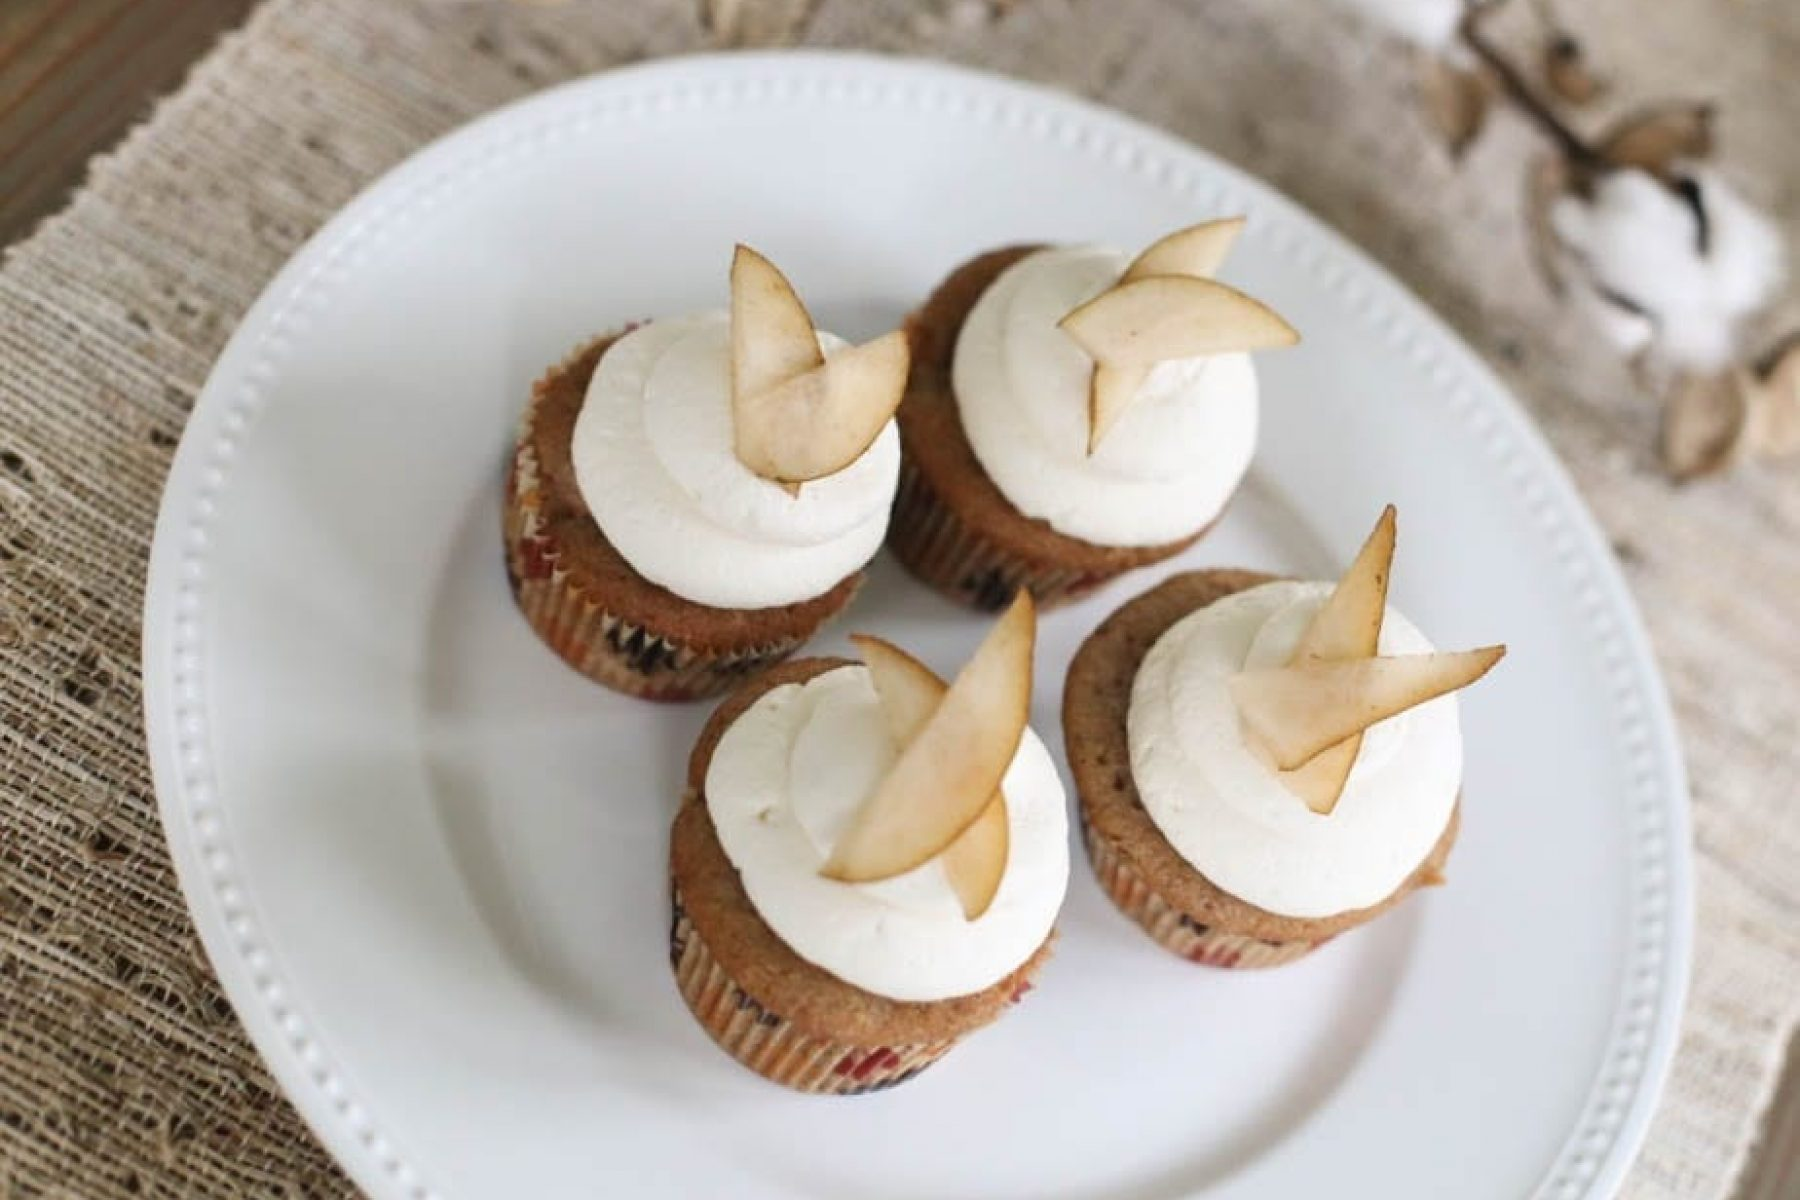 Maple Syrup - Cupcake - Recipe - Cupcake of the Month - Pear - Apple- Fall Flavors - Afternoon Espresso